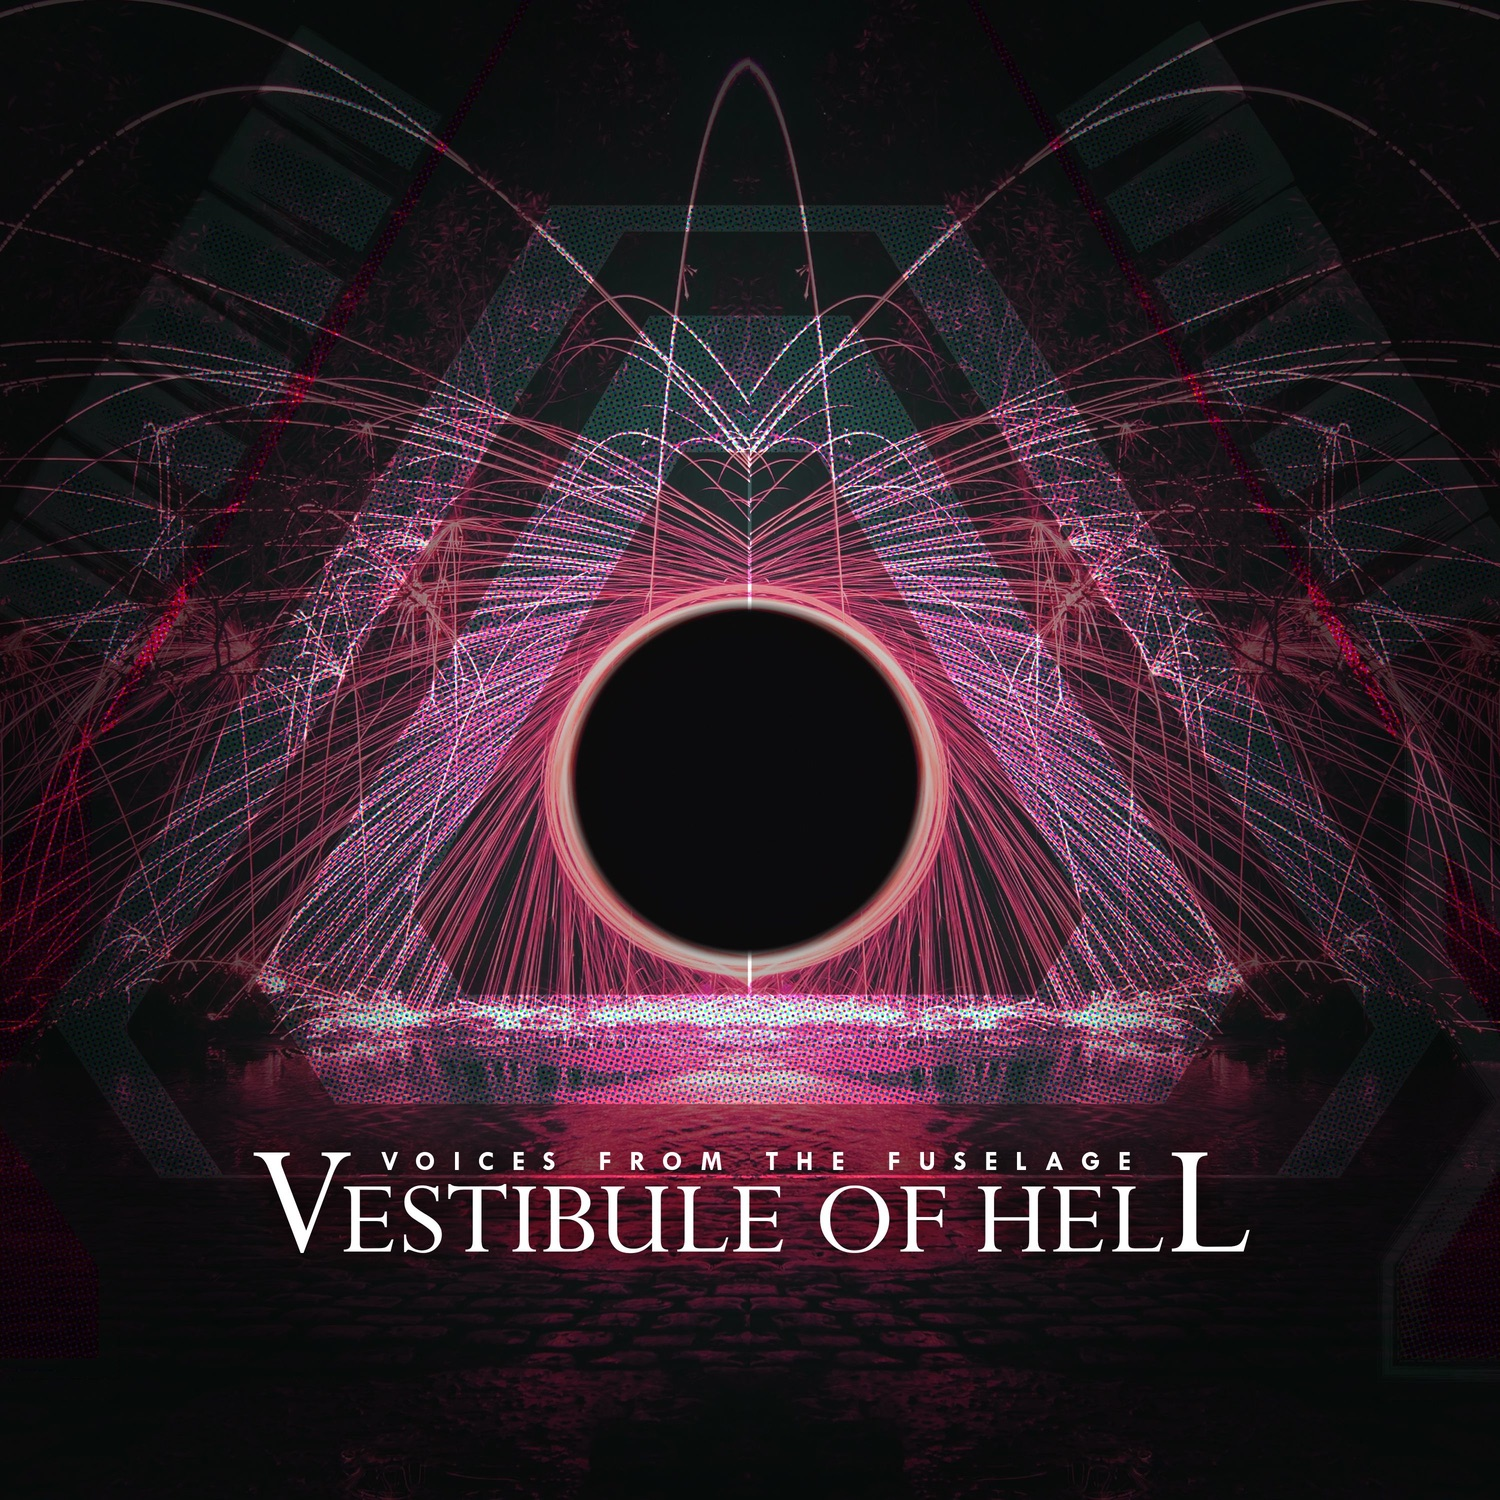 Voices From The Fuselage - Vestibule of Hell [single] (2018)